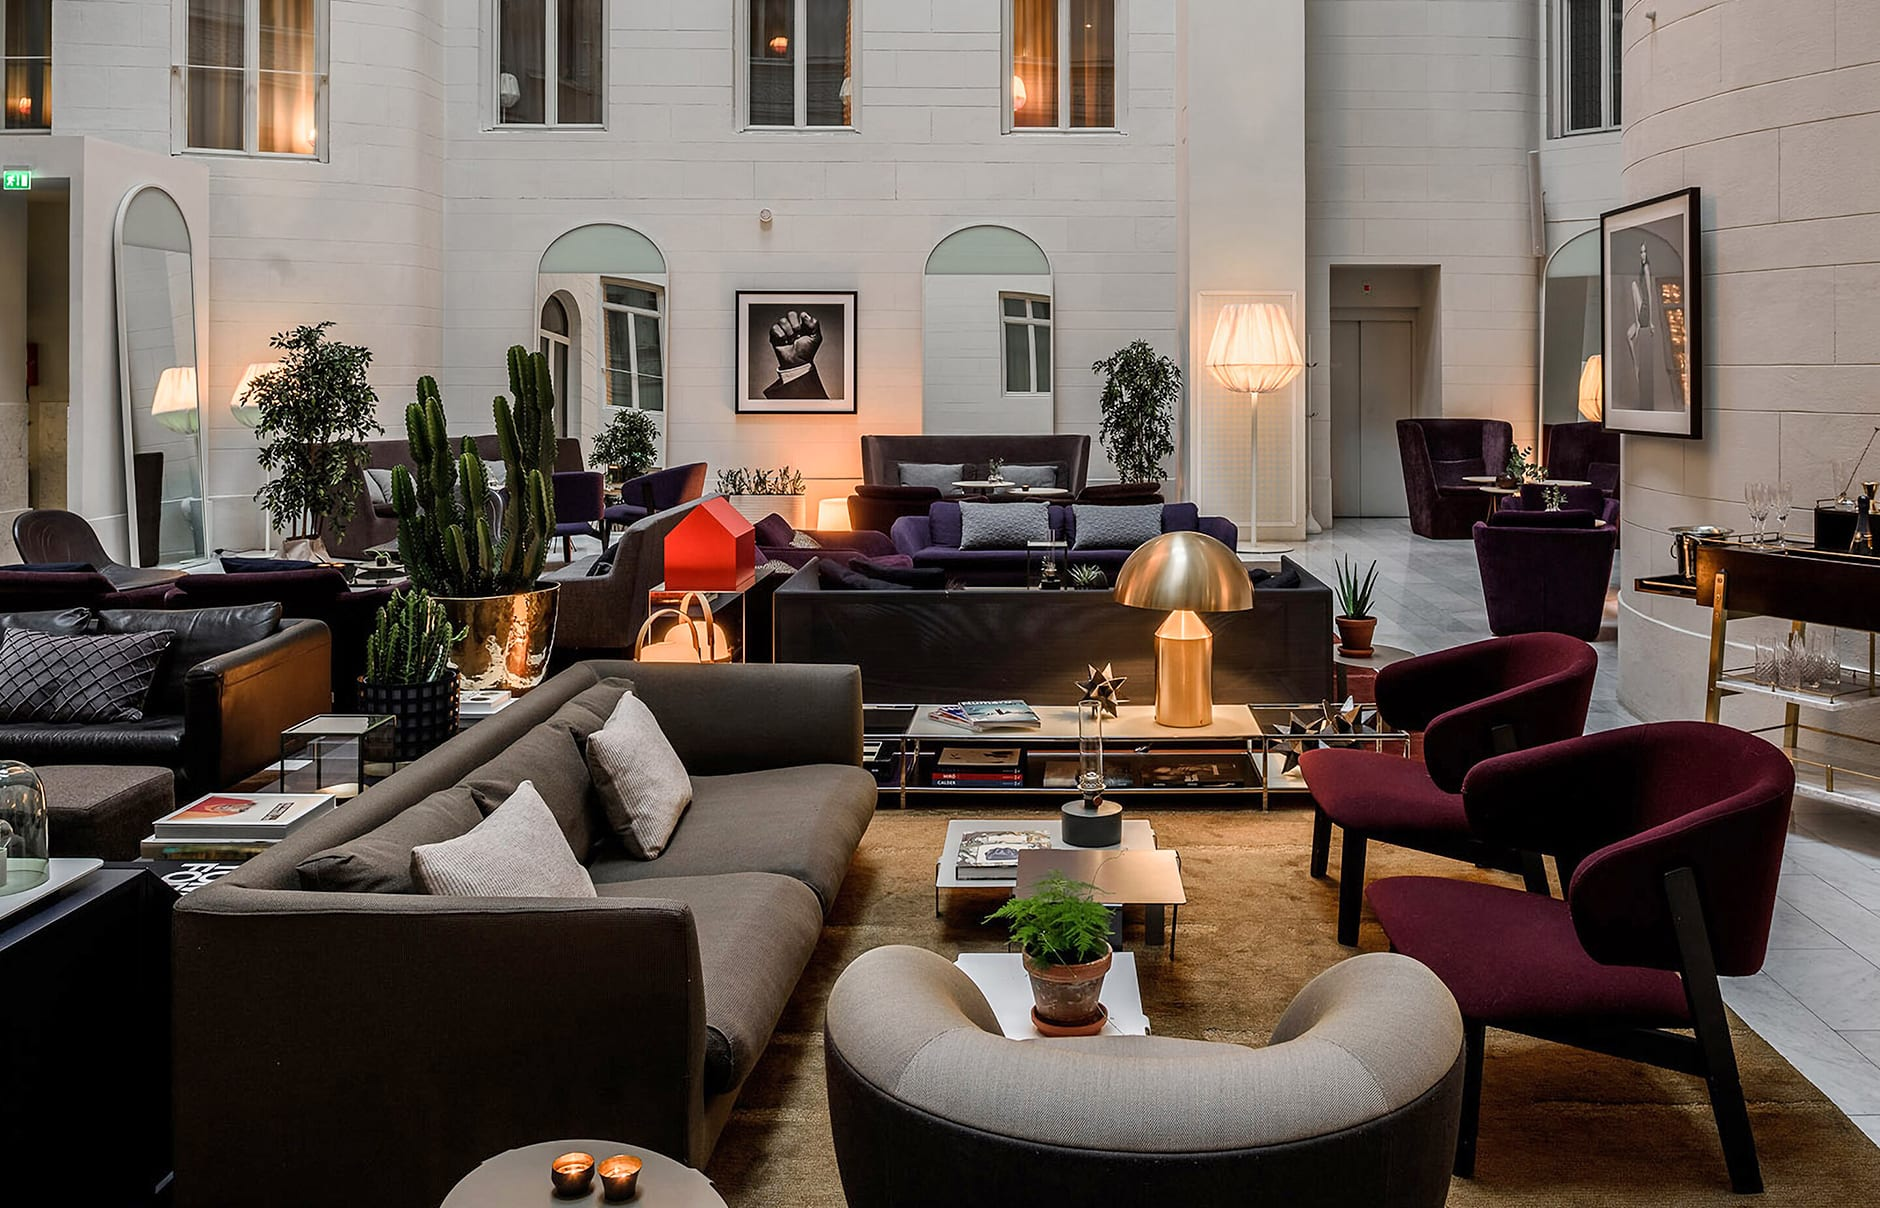 Nobis Hotel, Stockholm, Sweden. Photo © Nobis Hotel